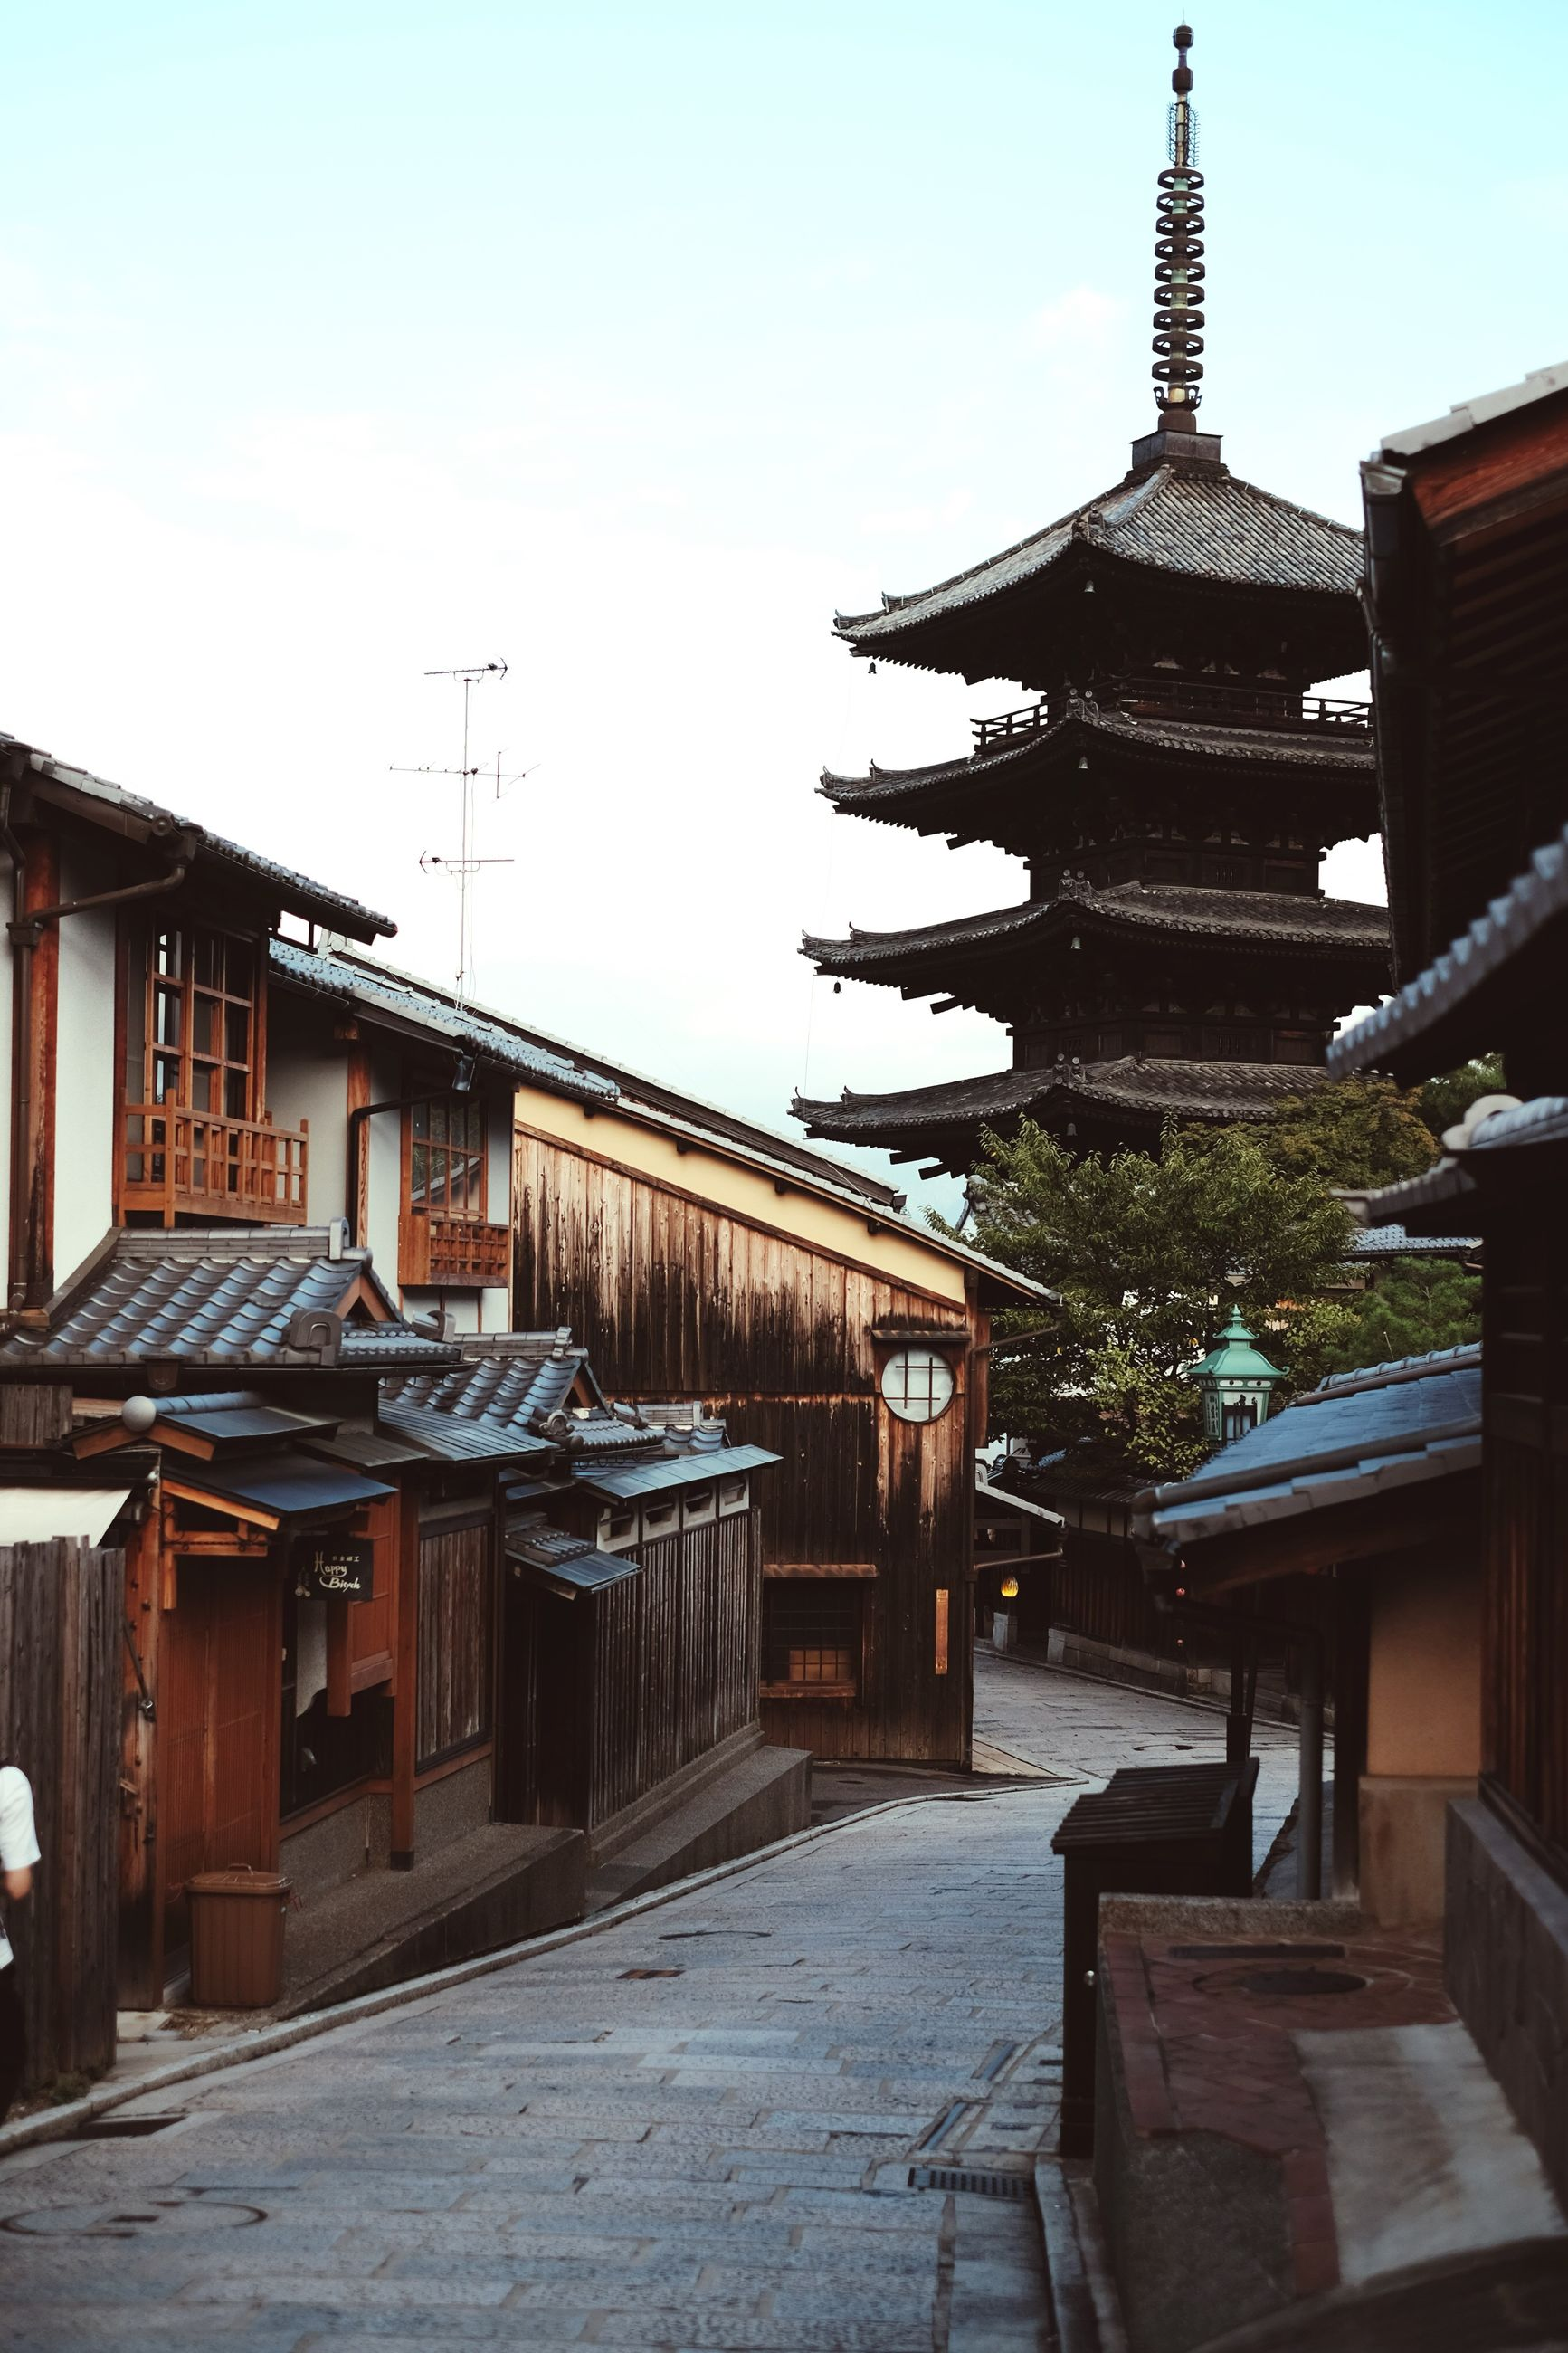 building exterior, architecture, built structure, residential building, clear sky, residential structure, city, day, culture, footpath, sky, outdoors, no people, asian culture, town, famous place, exterior, leading